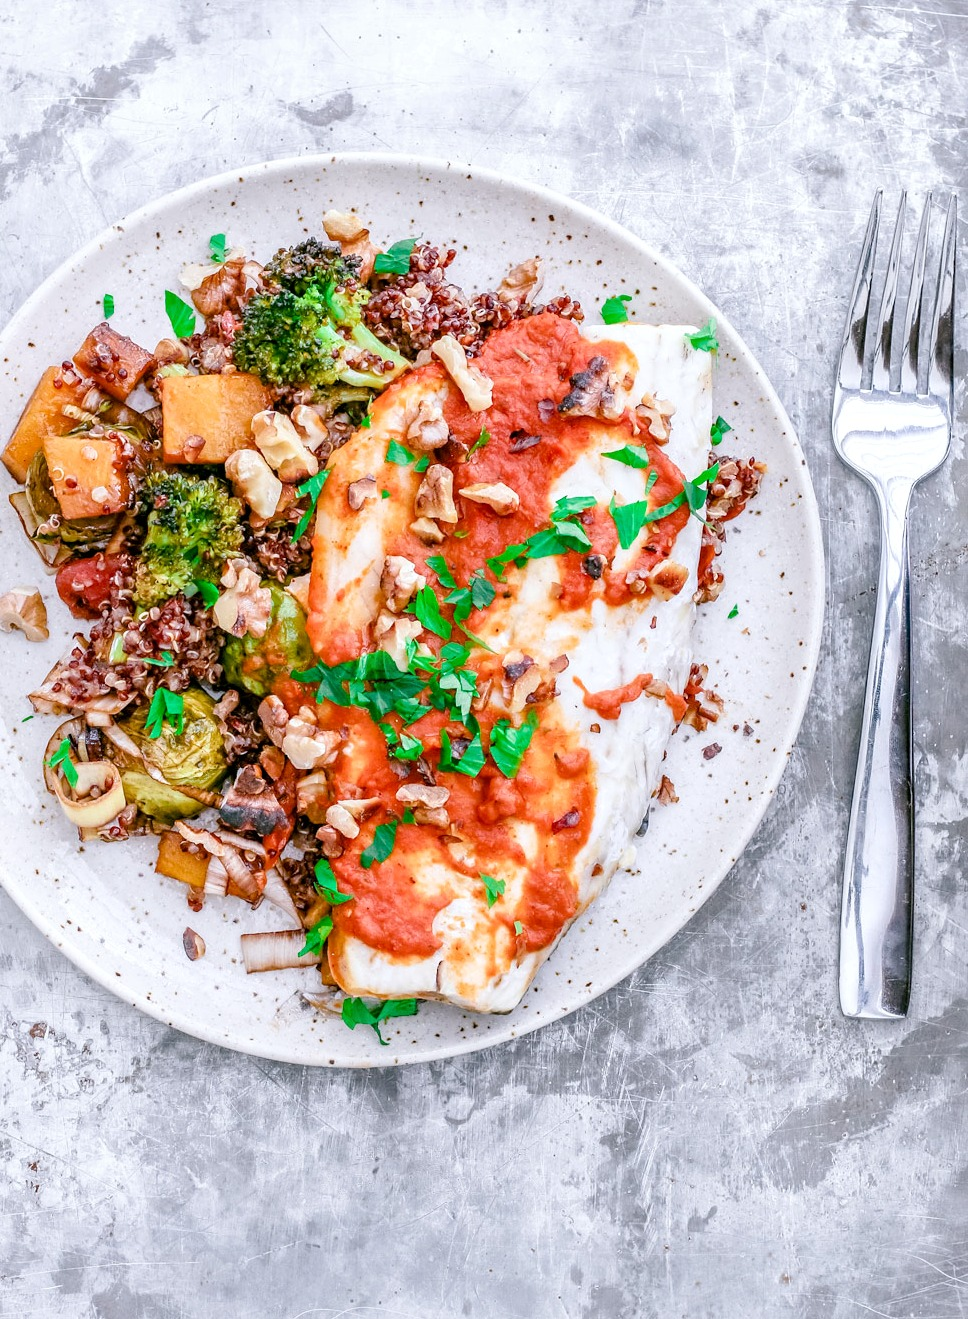 Striped Bass With Roasted Red Pepper Almond Sauce and Fall Harvest Quinoa | Killing Thyme